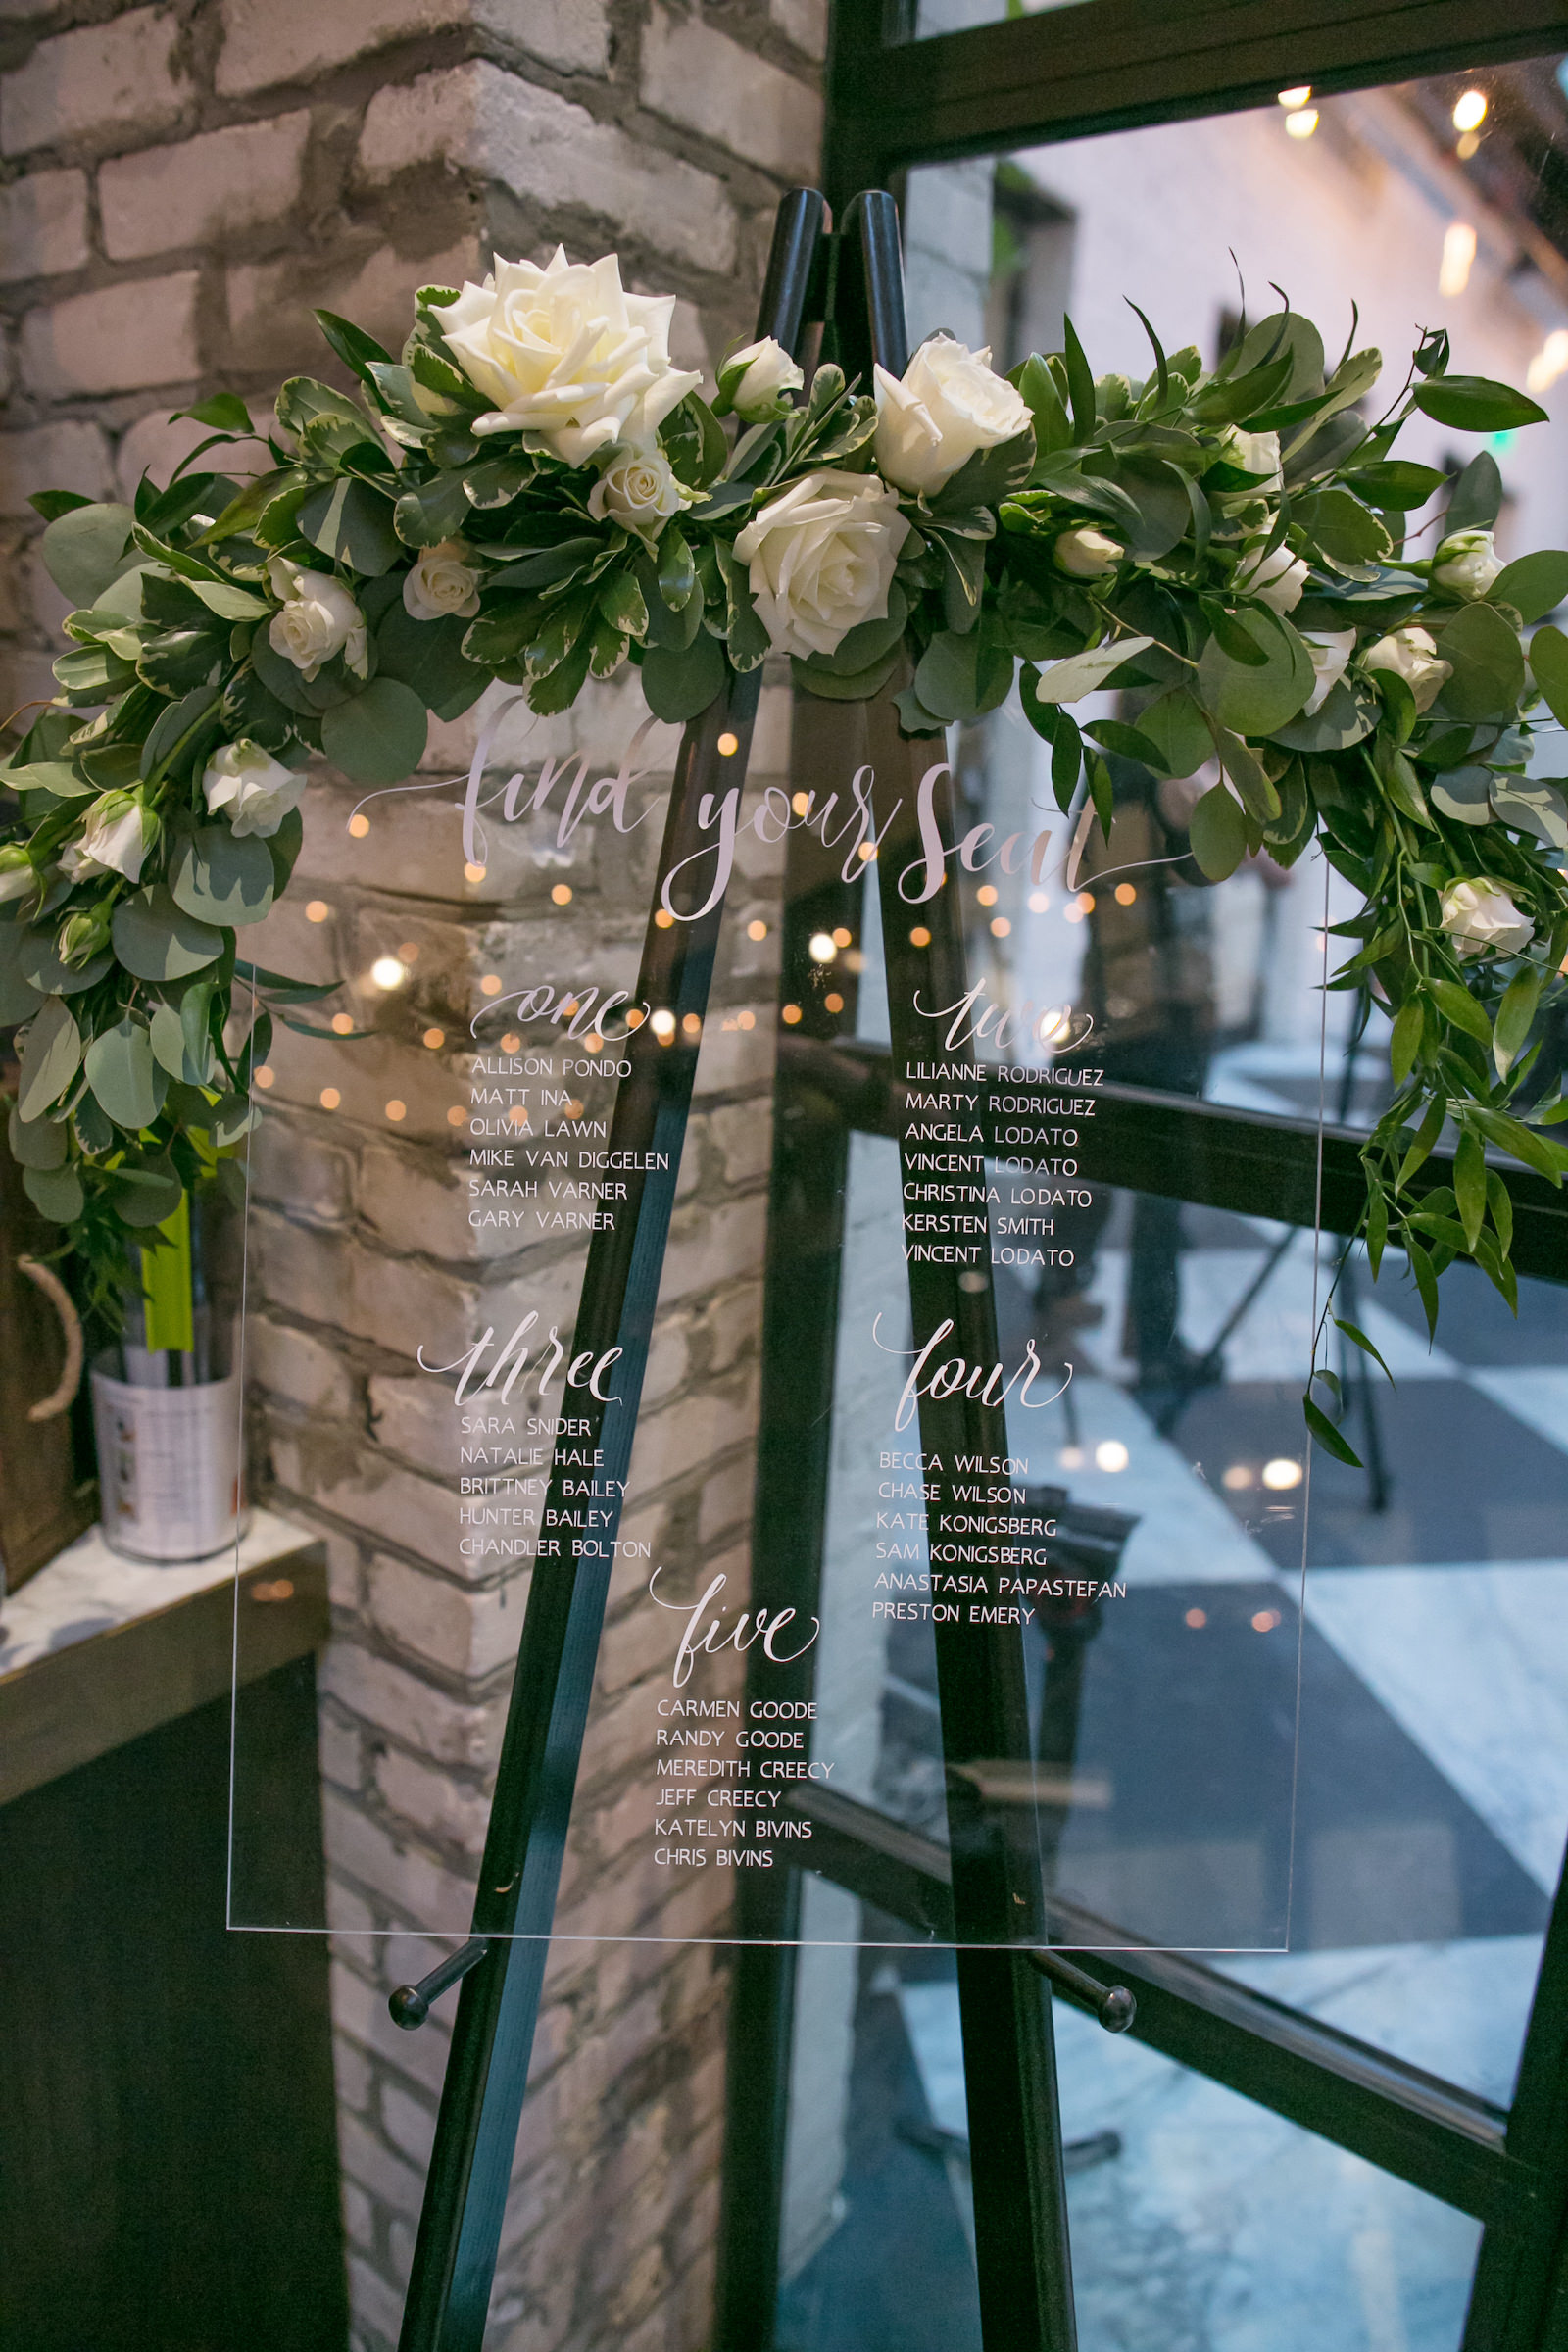 Wedding Seating Chart Acrylic Clear with White Calligraphy on Easel with Greenery Garland